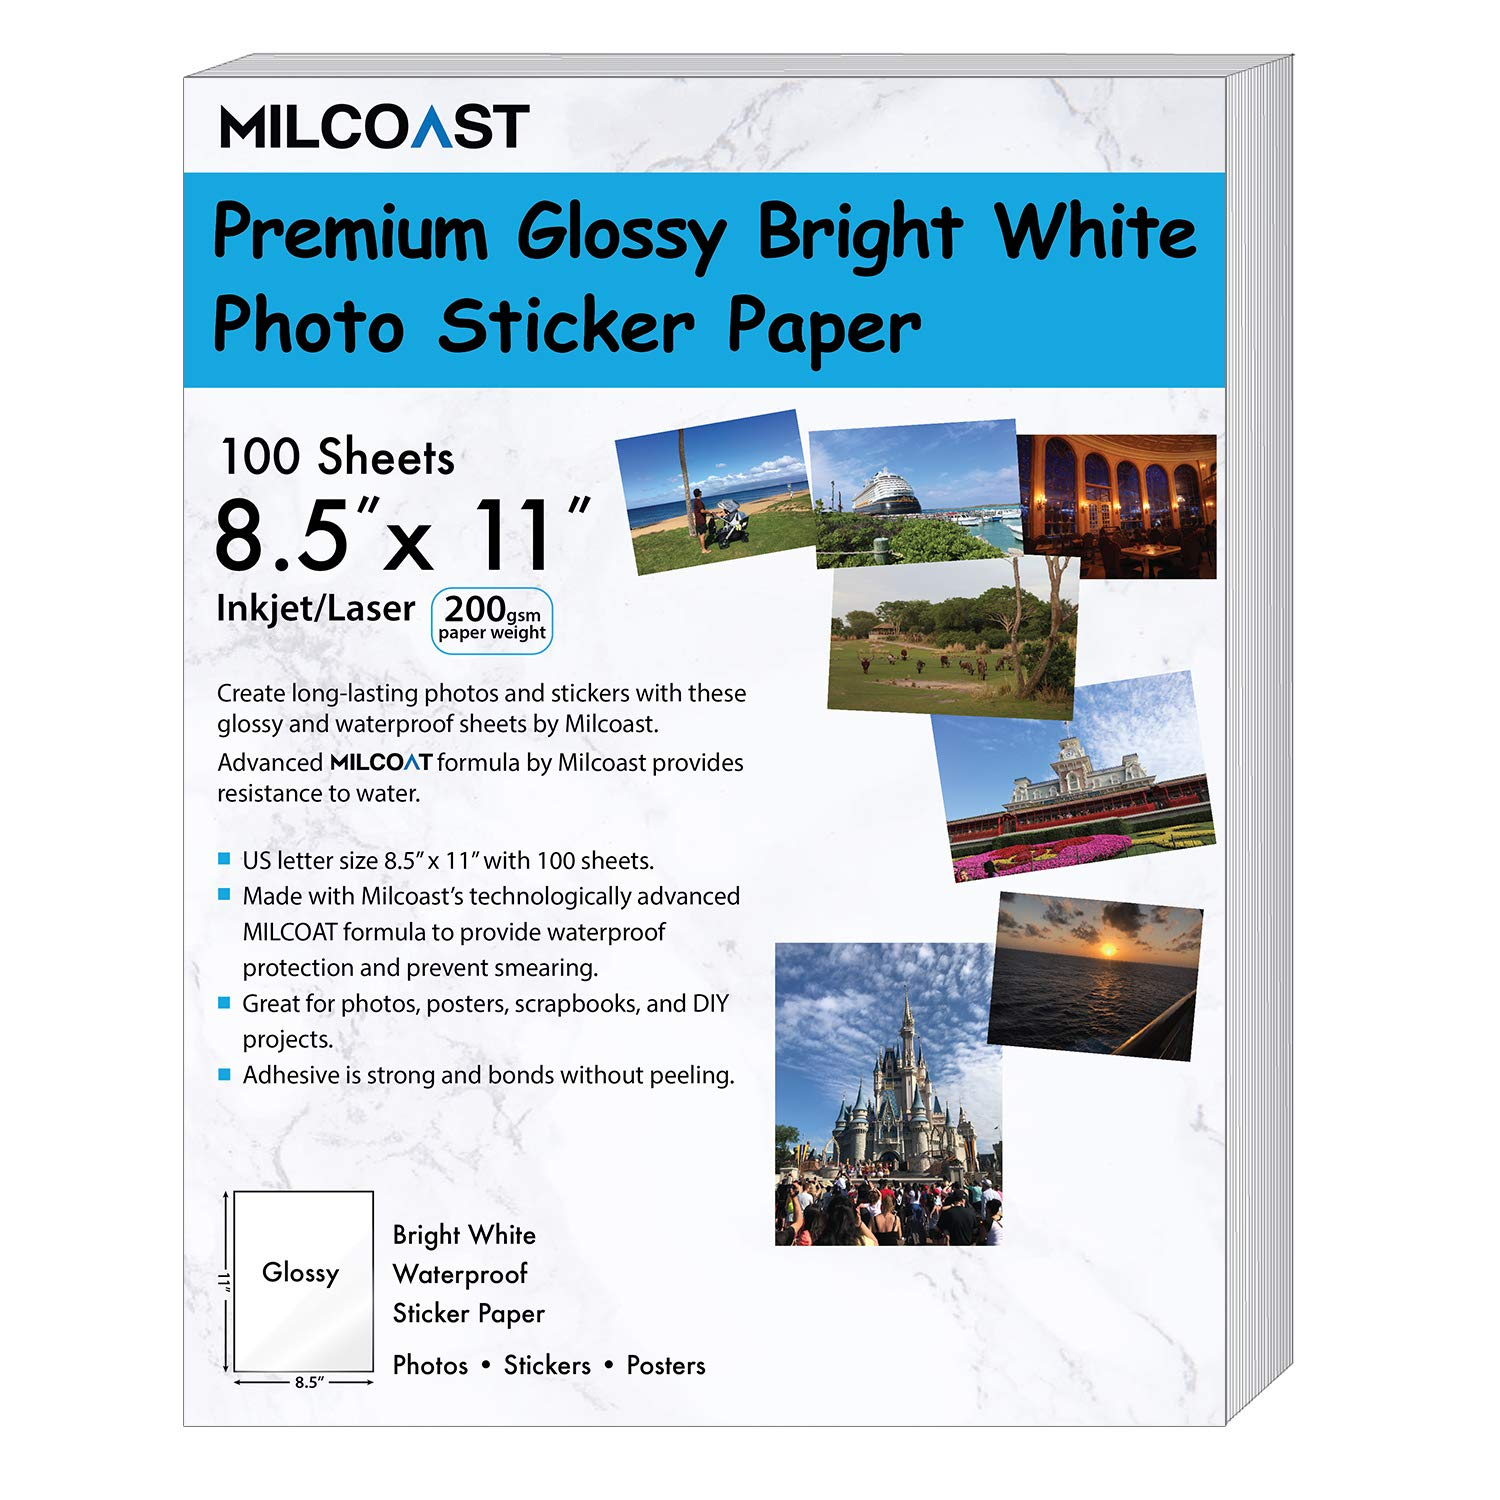 Milcoast Glossy Full Sheet 8.5 x 11 Waterproof Adhesive Bright White Photo Paper (50 Sheets) MC-GFSPPWP-LBL-50